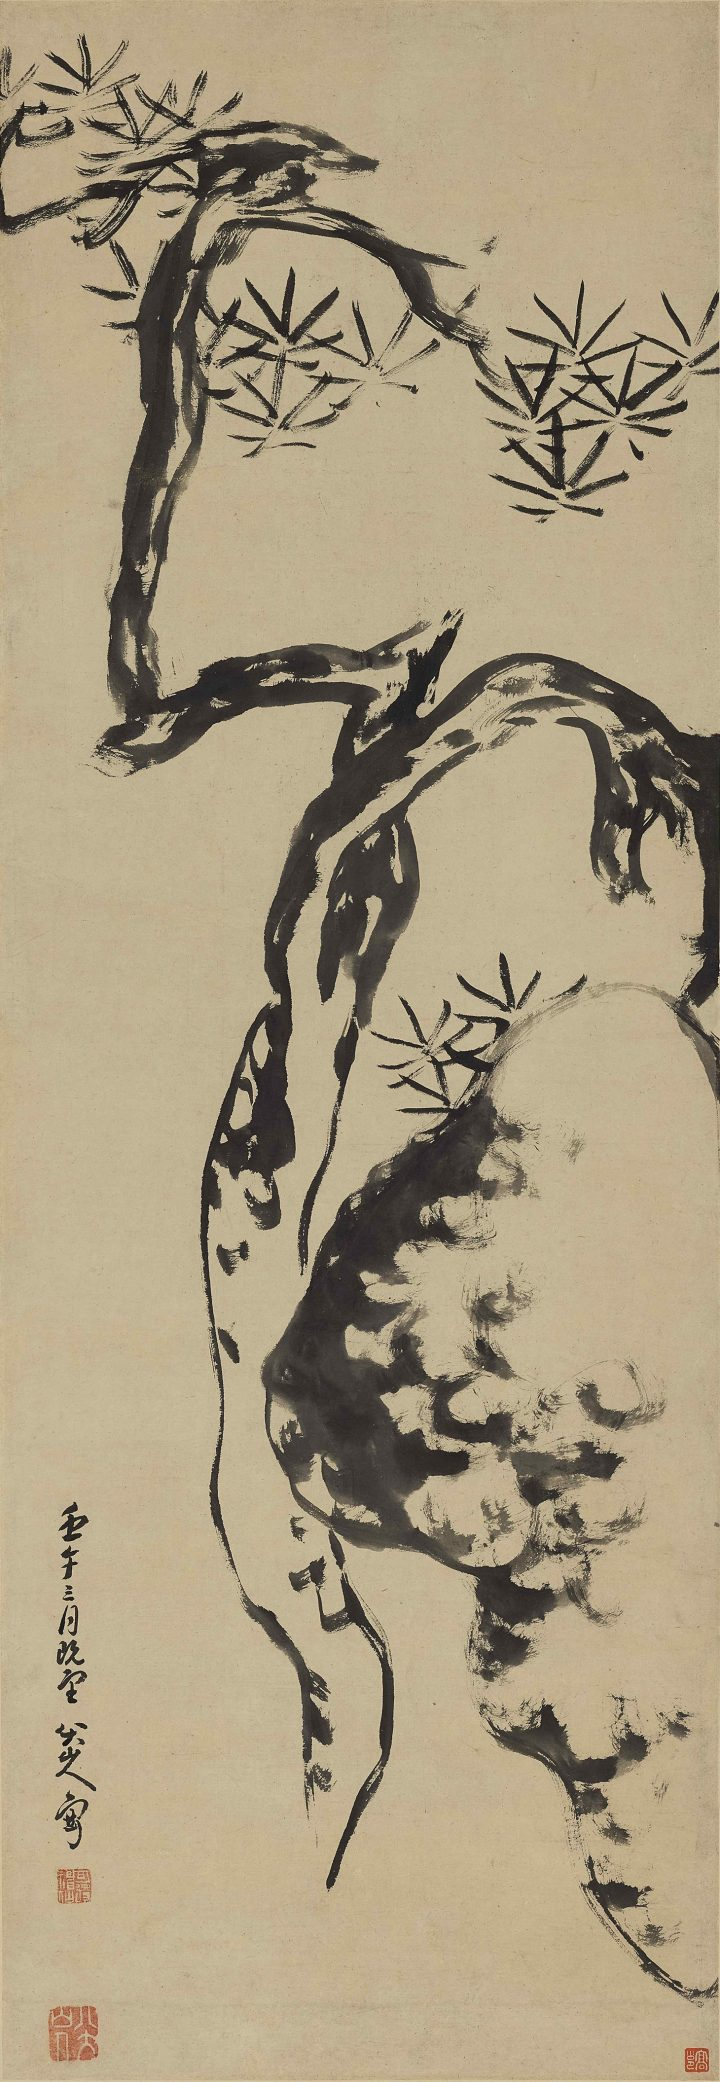 """Bada Shanren (Zhu Da), """"Pine Tree and Rock"""" (1702), ink on paper, hanging scroll, 52 x 18 inches (image courtesy Sotheby's)"""